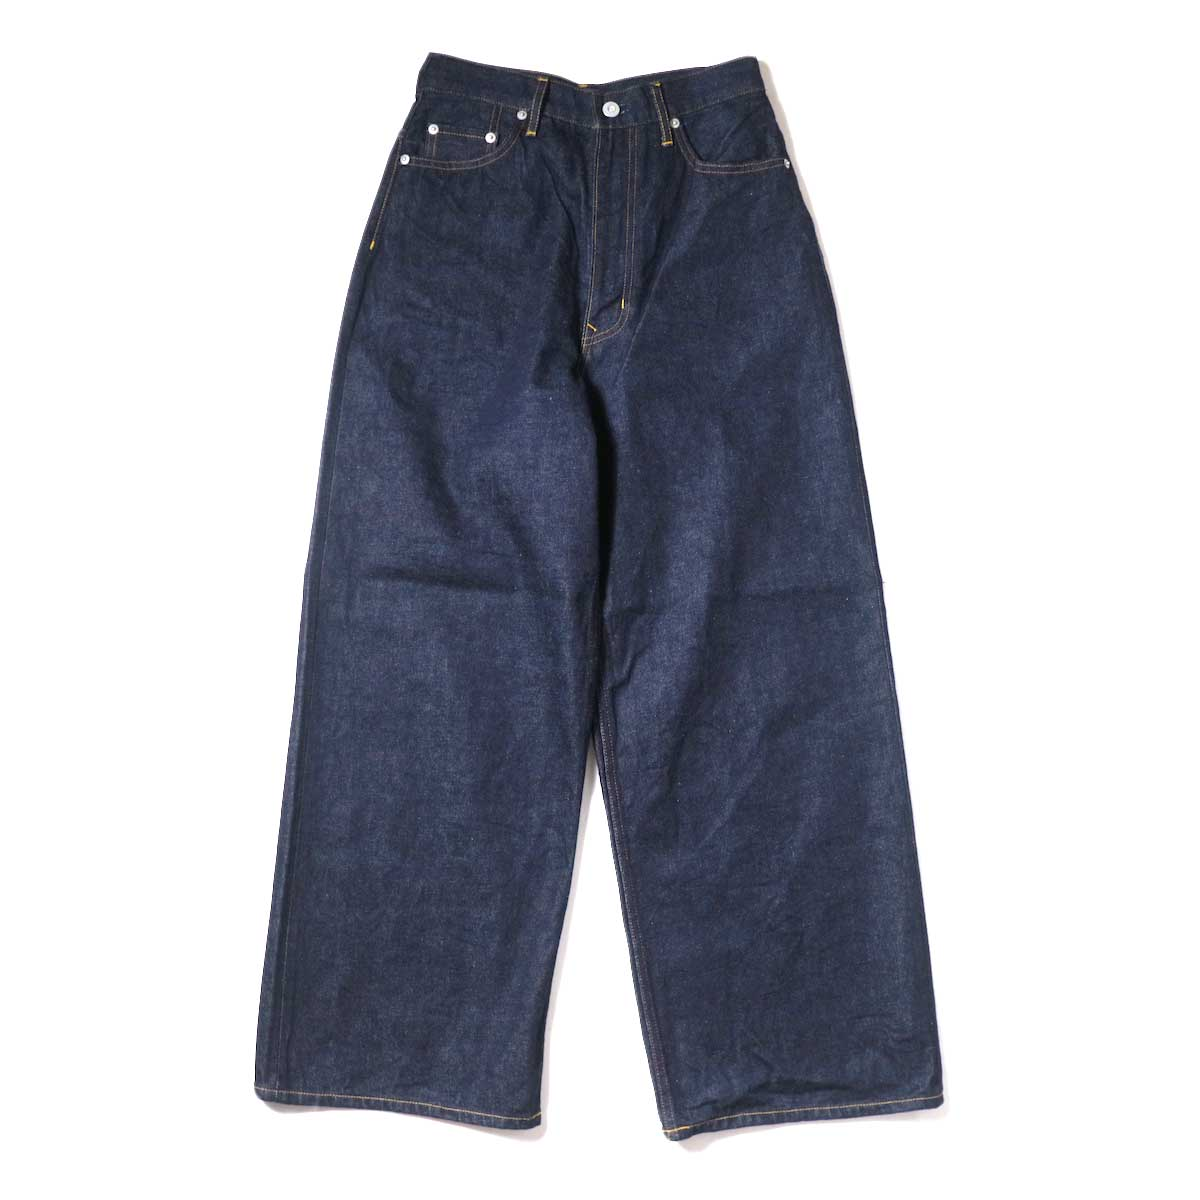 YLEVE / 13.5oz DENIM HIGH WEST WIDE (Indigo) 正面